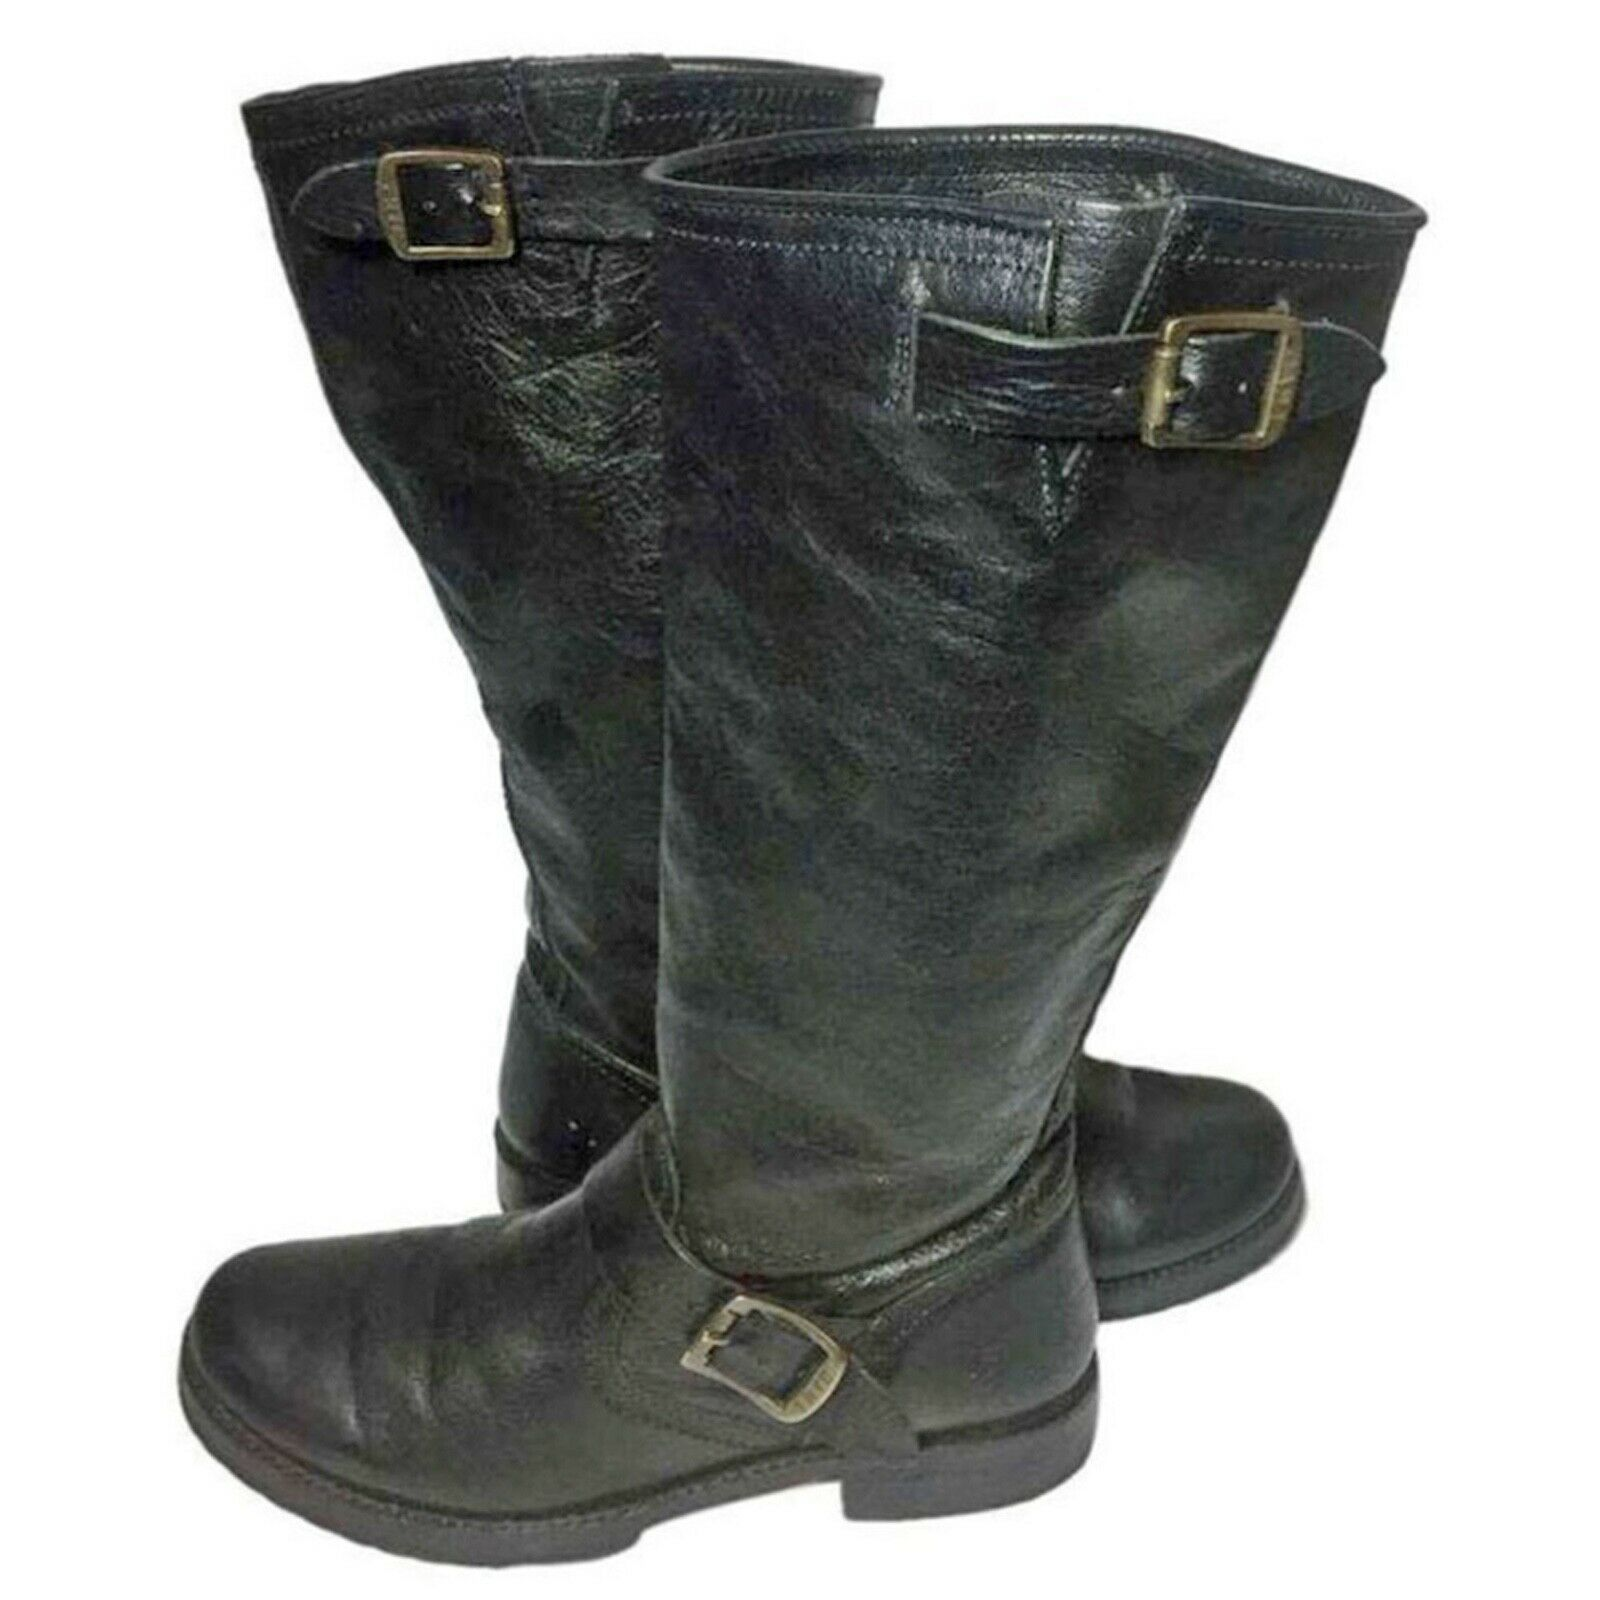 FRYE 77605 Veronica Slouch Black Leather Motorcycle Boots Women's Size 8